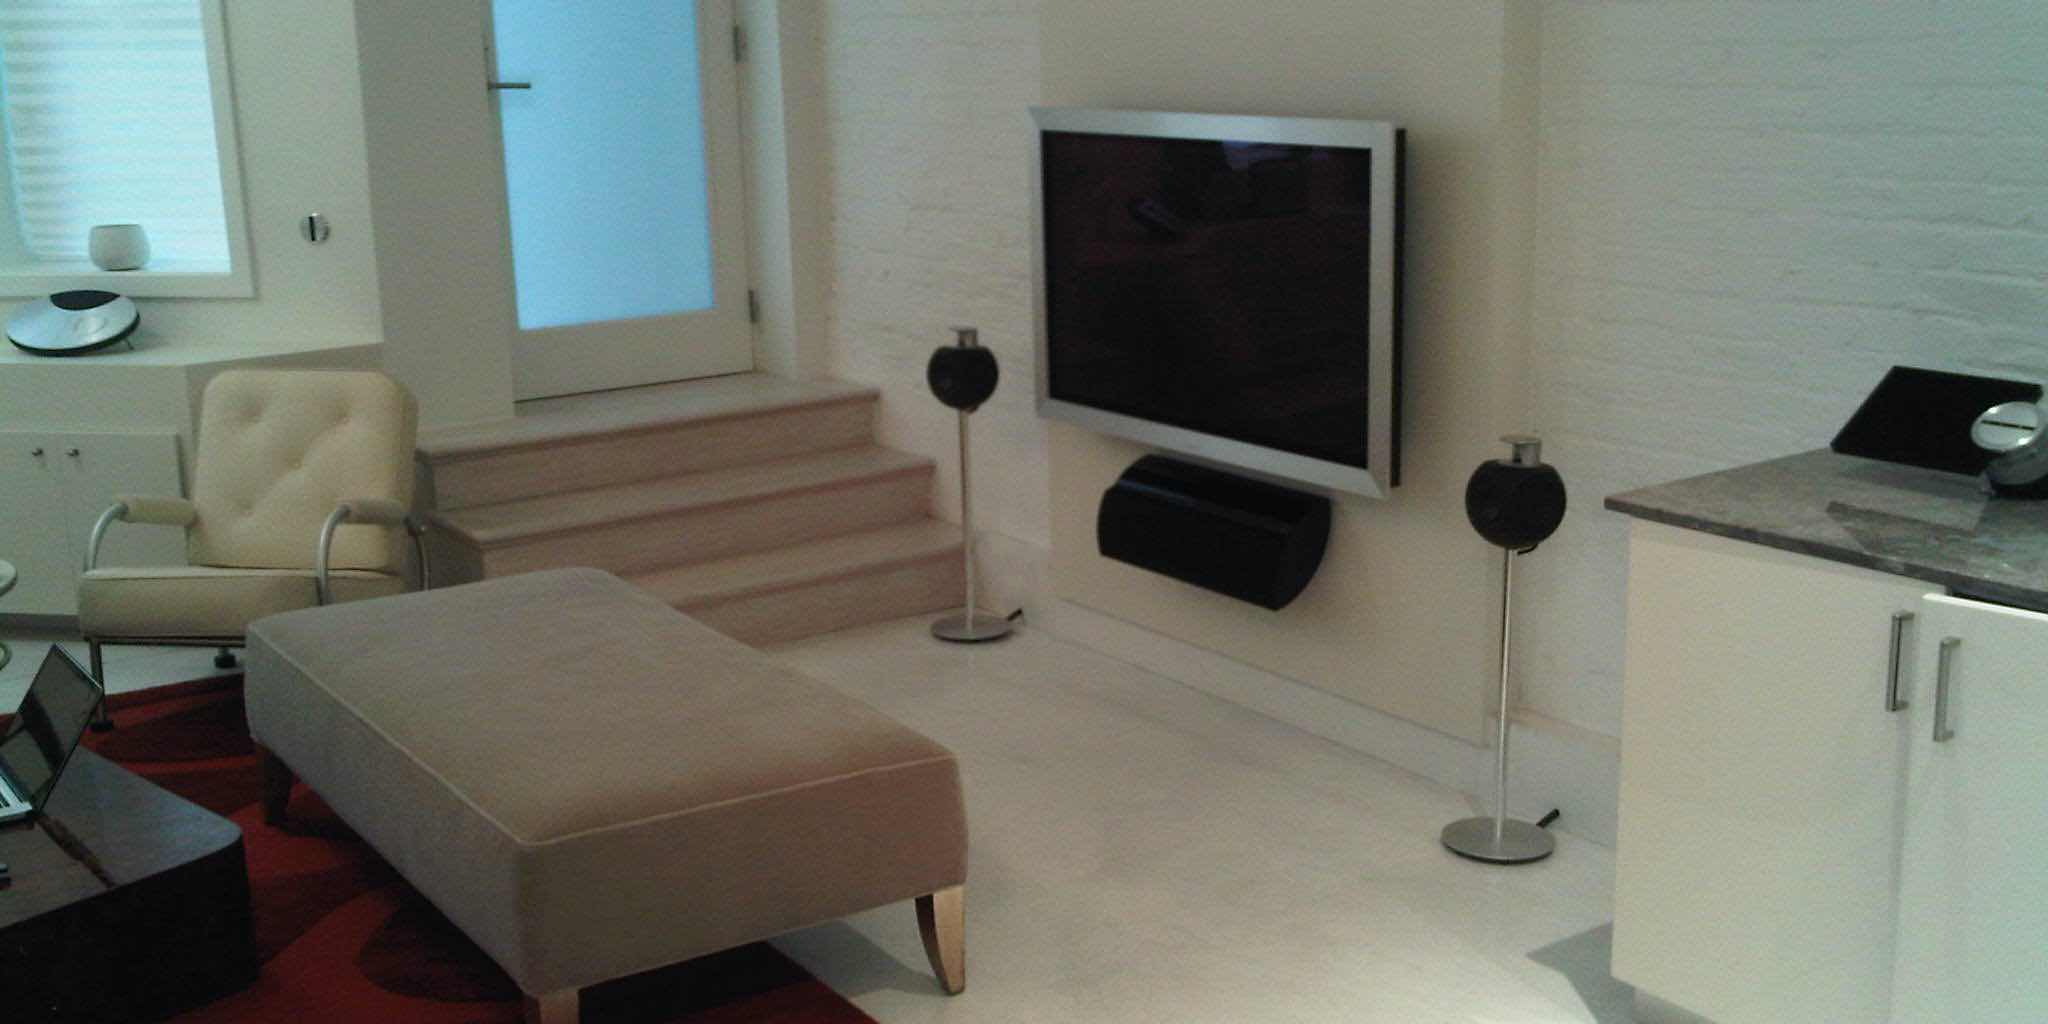 Custom installation of Bang & Olufsen Entertainment System with extreme attention to details, in Miami Beach, FL. By dmg Martinez Group.